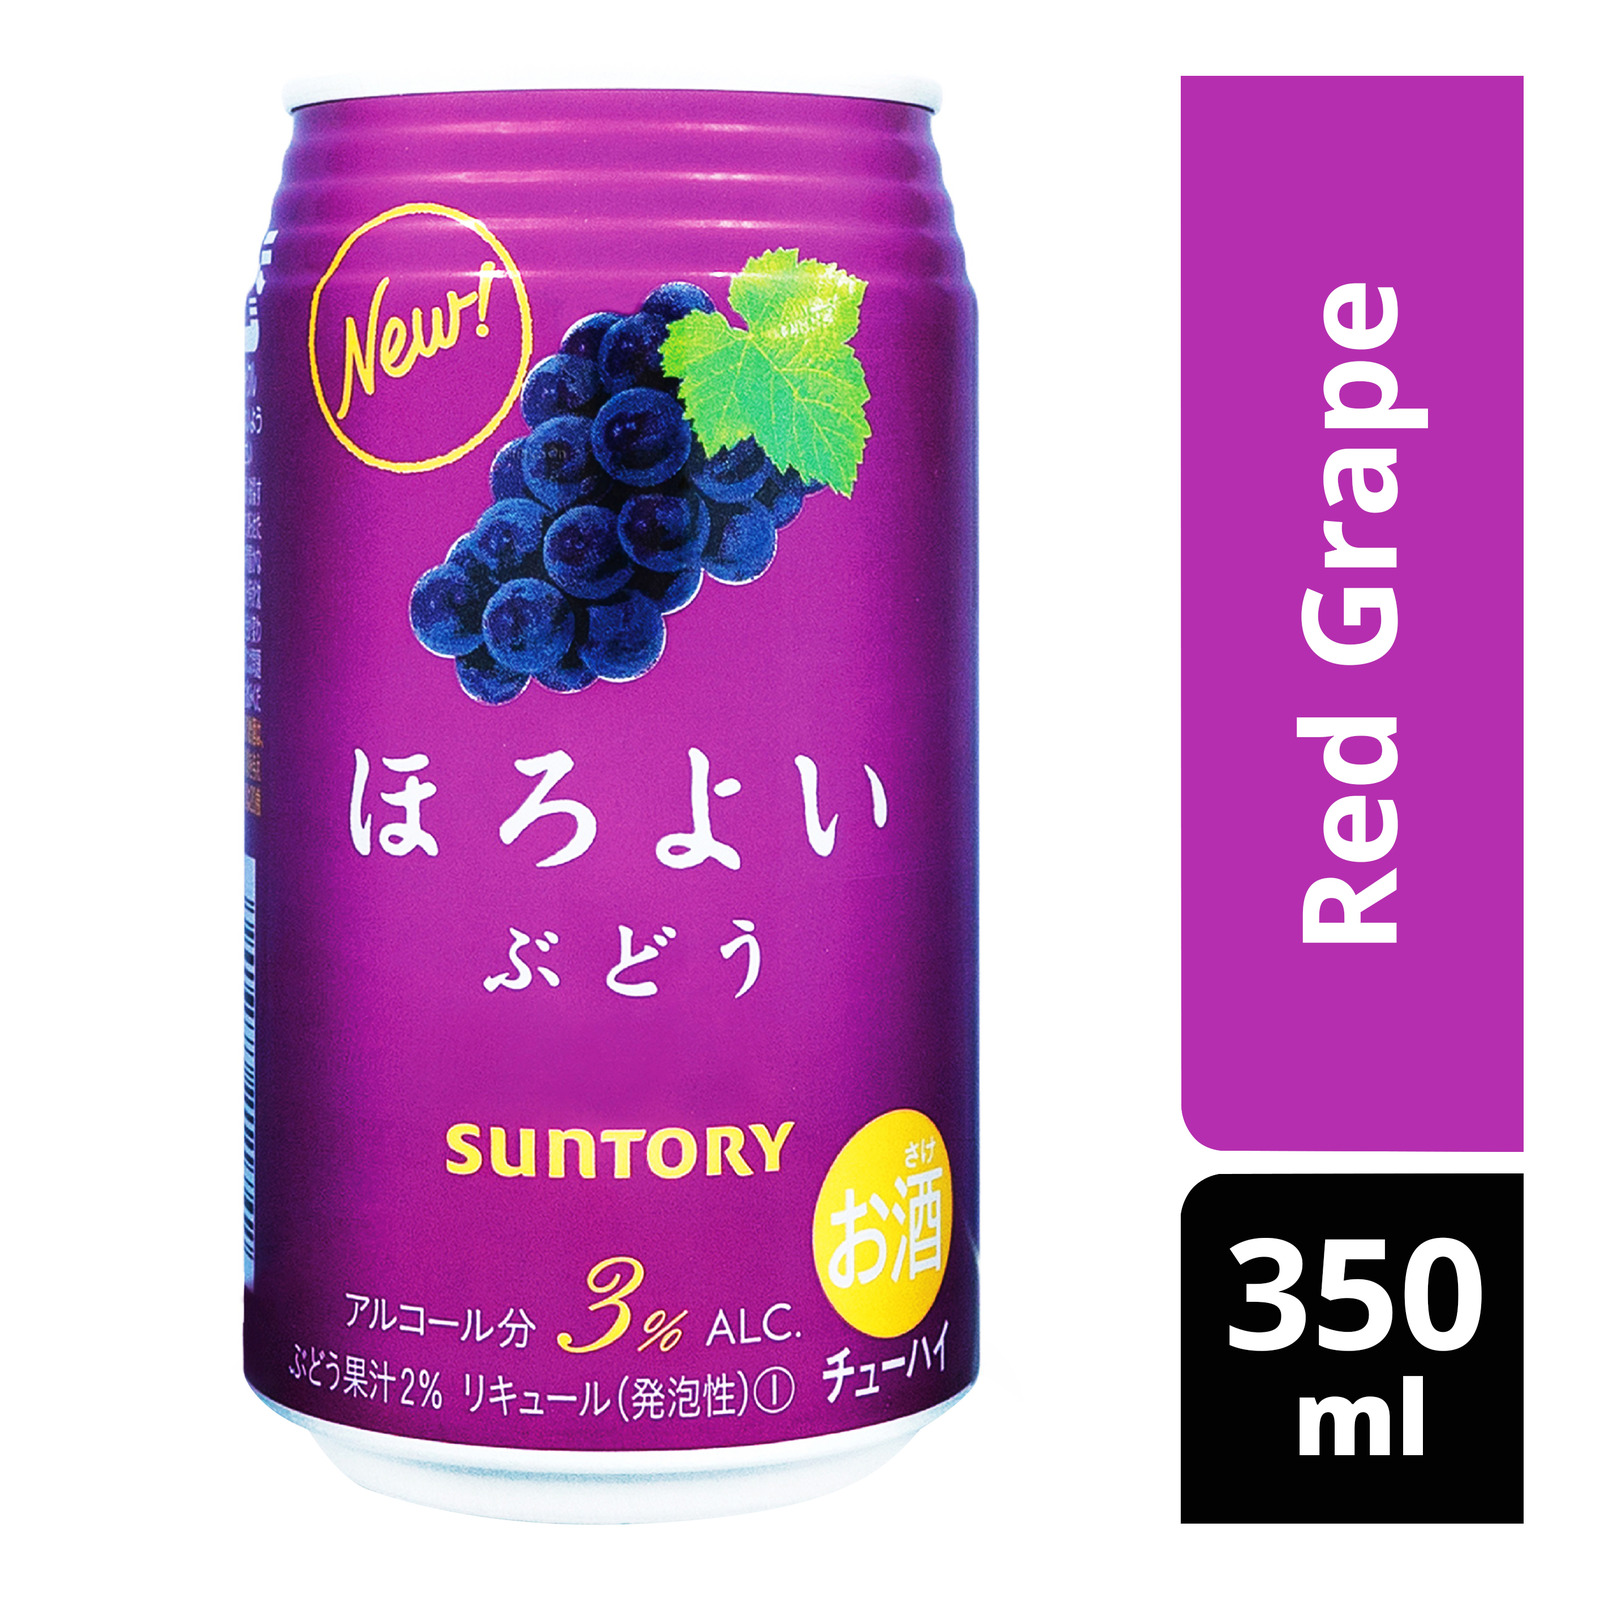 Suntory Horoyoi Shochu Cocktail Can Drink - Red Grape